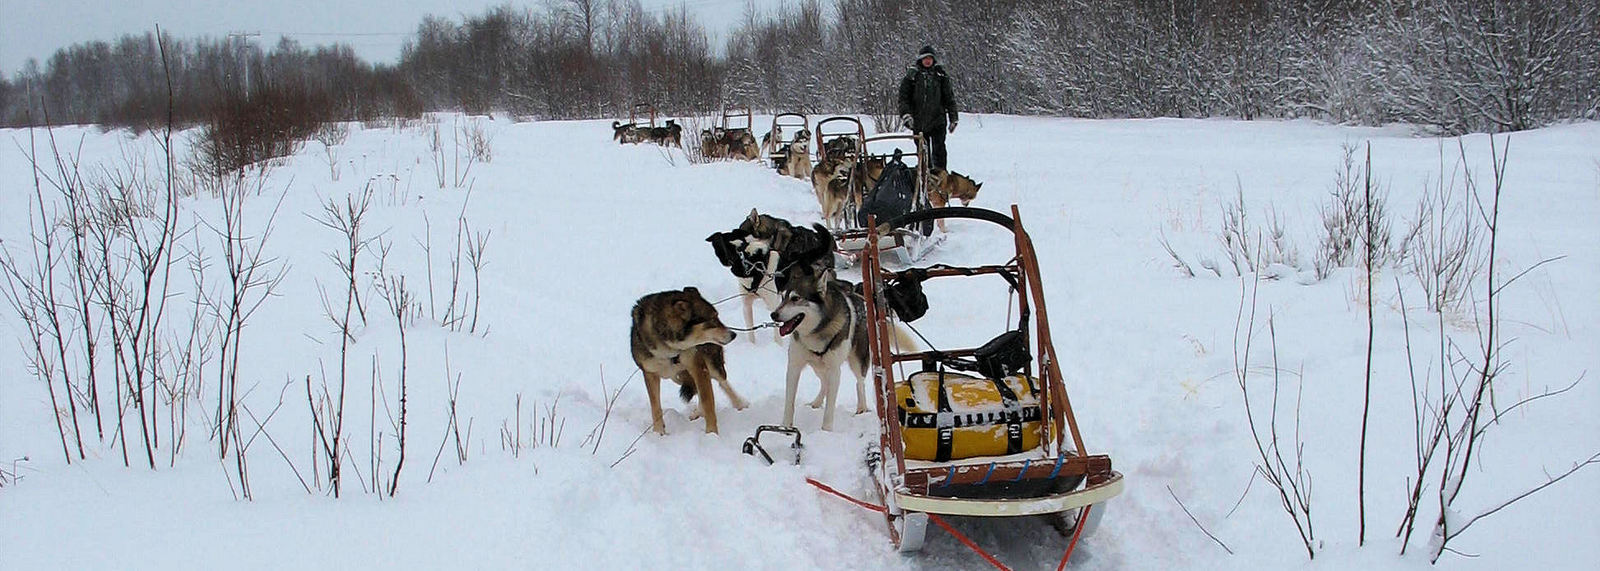 Dog Sledding Tour, Inari